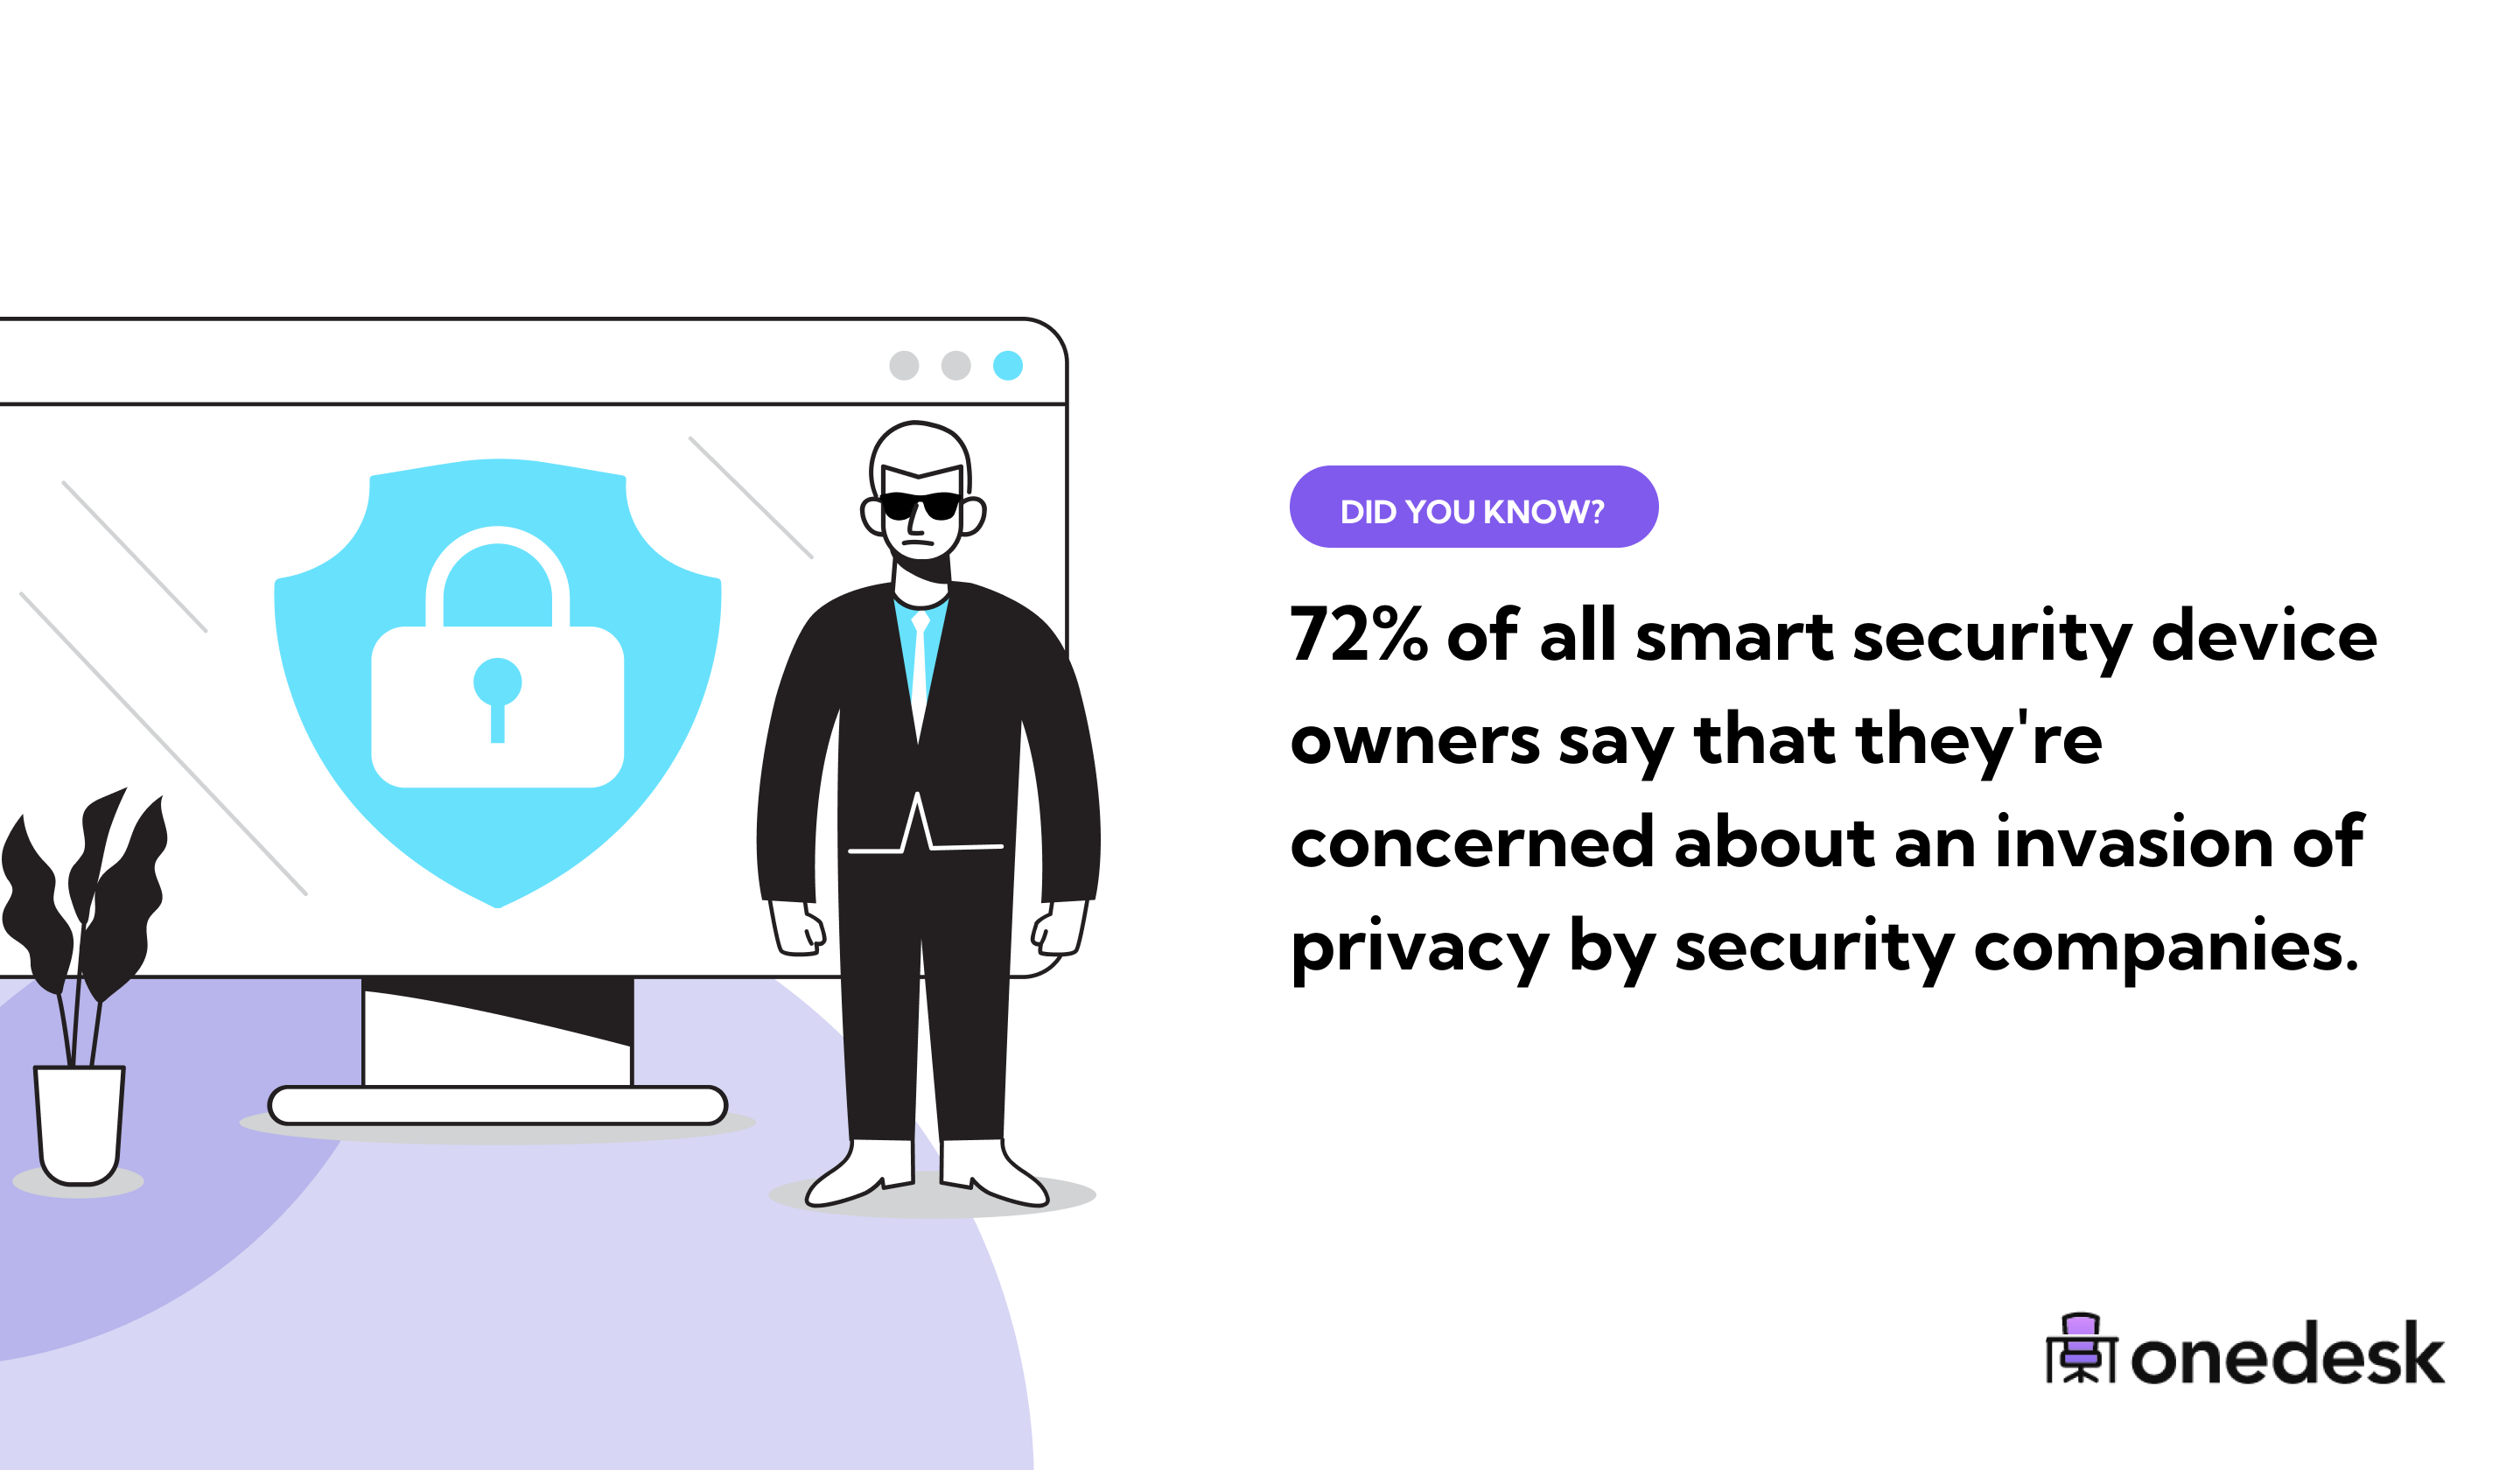 smart security devices owners worry about privacy